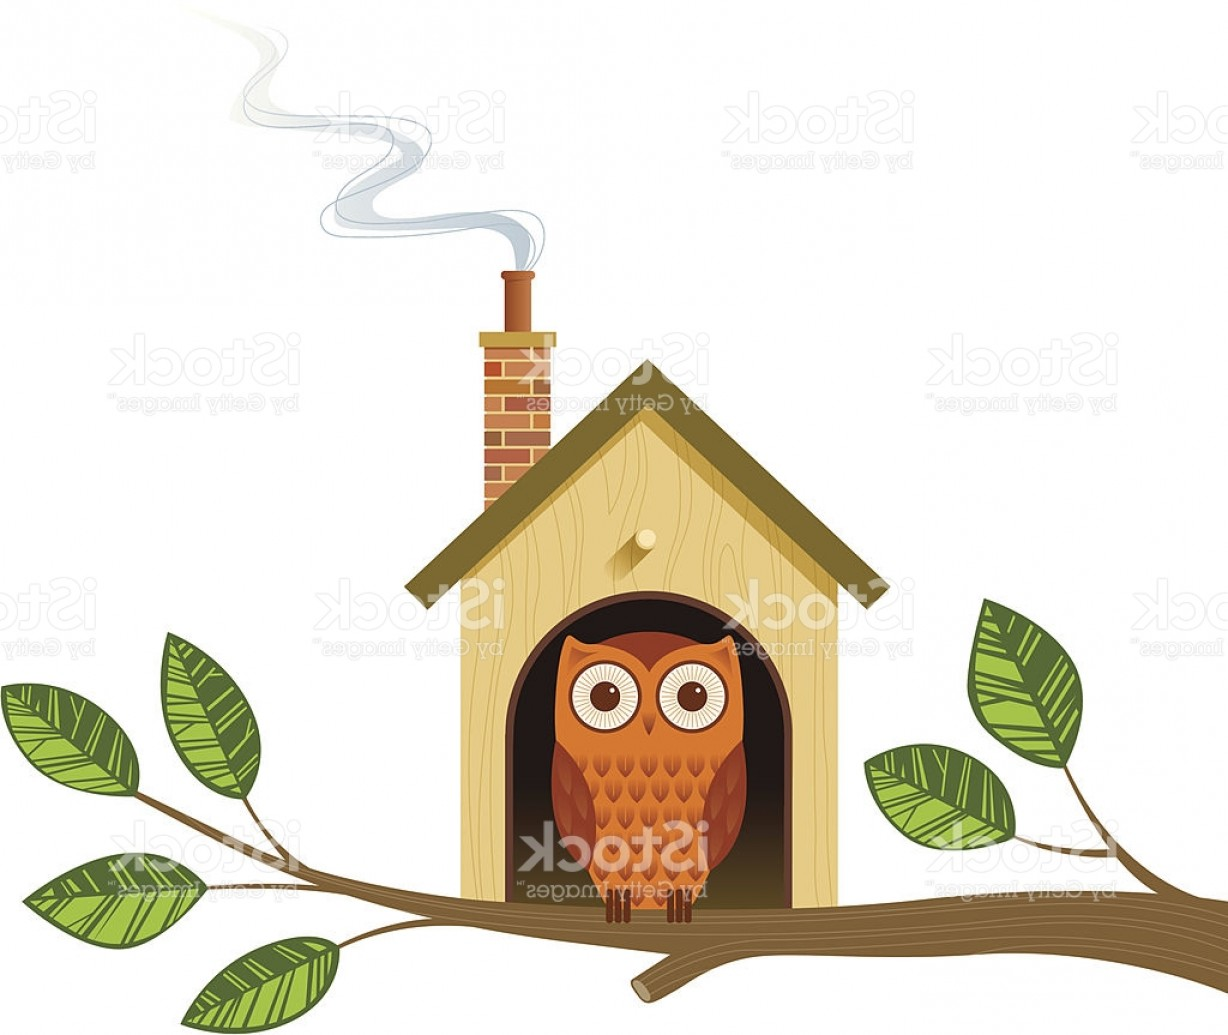 Vector Bird House: Cartoon Image Of An Owl In A Little House On A Tree Branch Gm